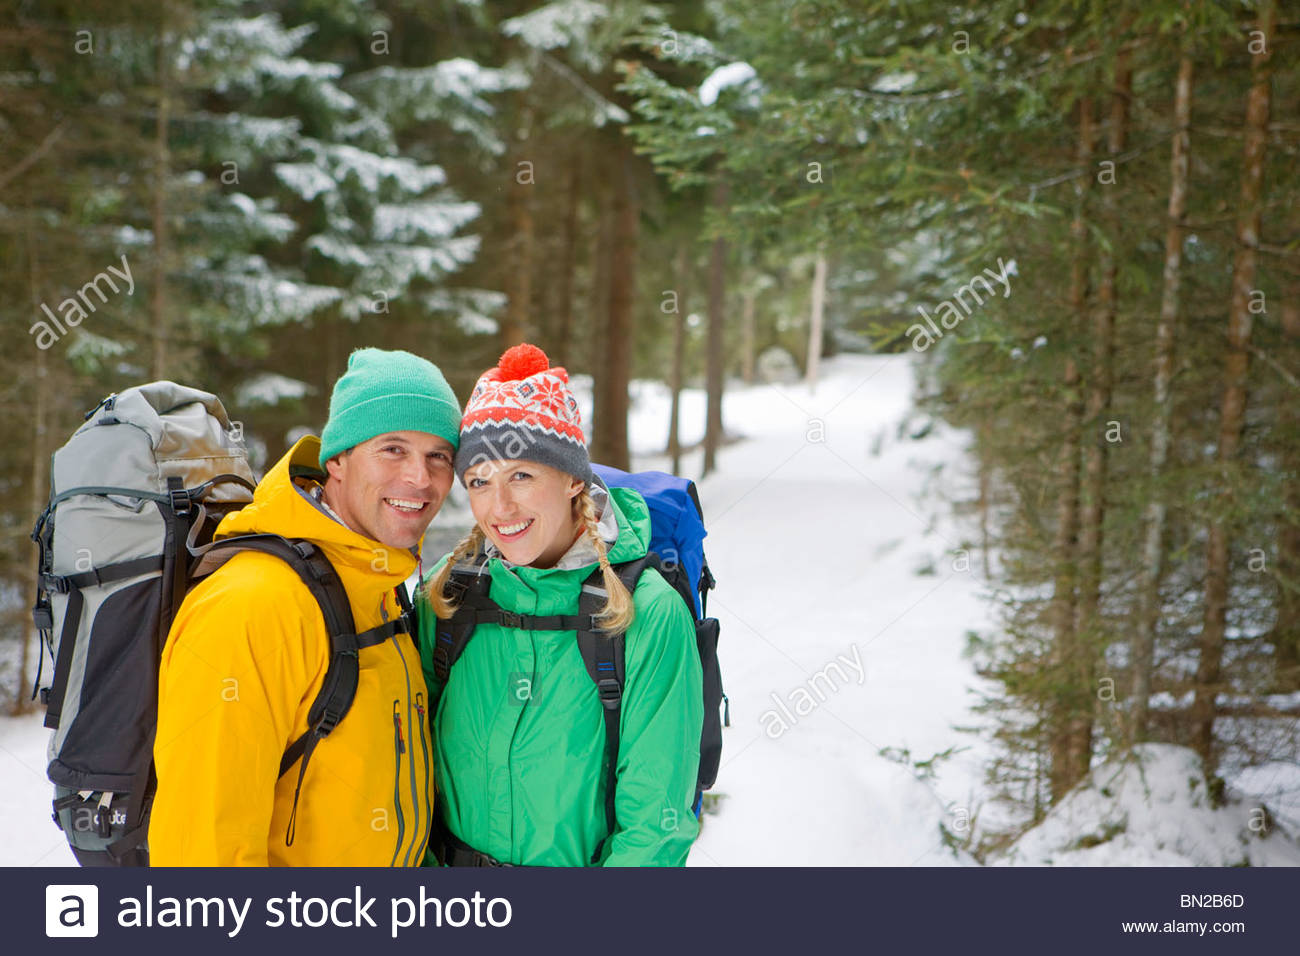 Portrait of happy couple with backpacks in snowy woods - Stock Image